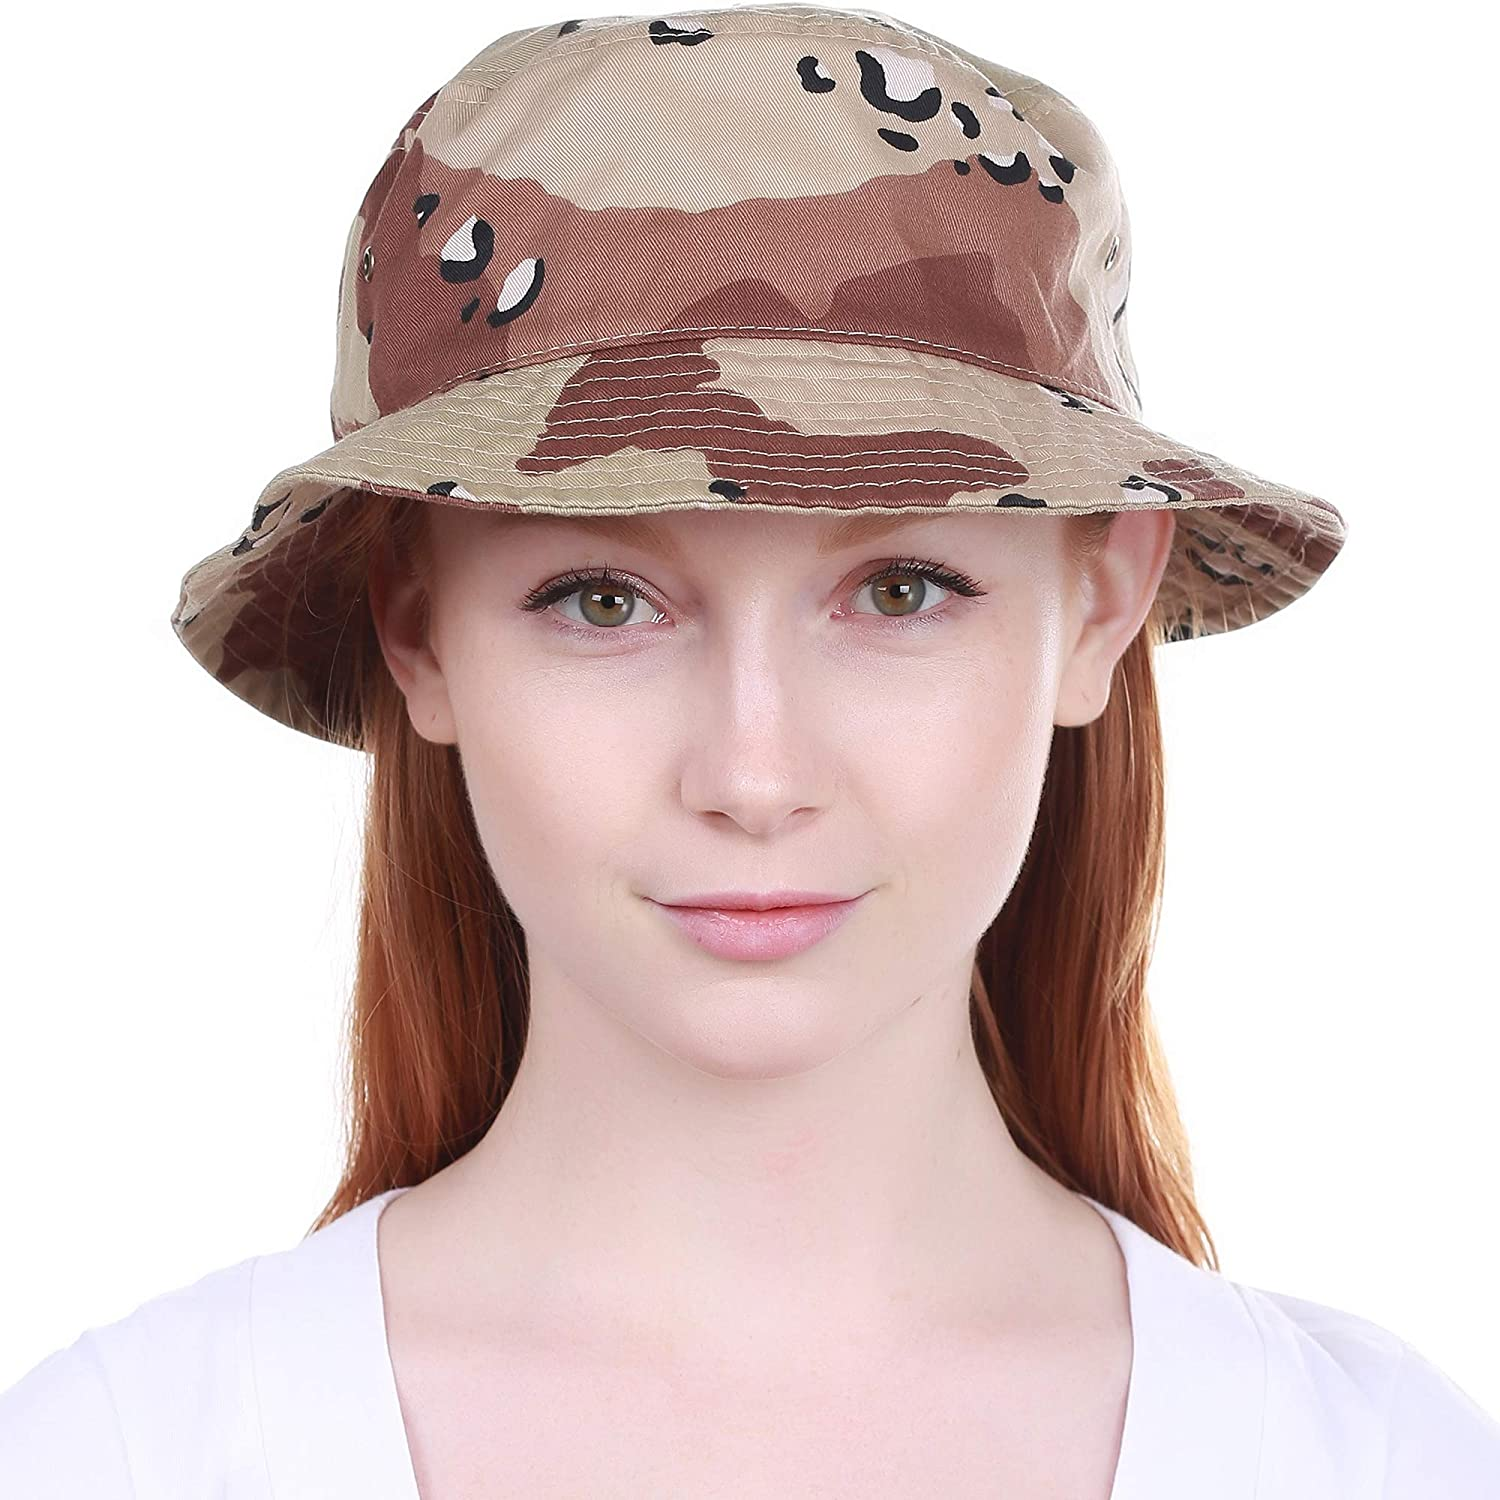 895d342d16451 KBETHOS Unisex 100% Washed Cotton Bucket Hat Summer Outdoor Cap at Amazon  Men s Clothing store